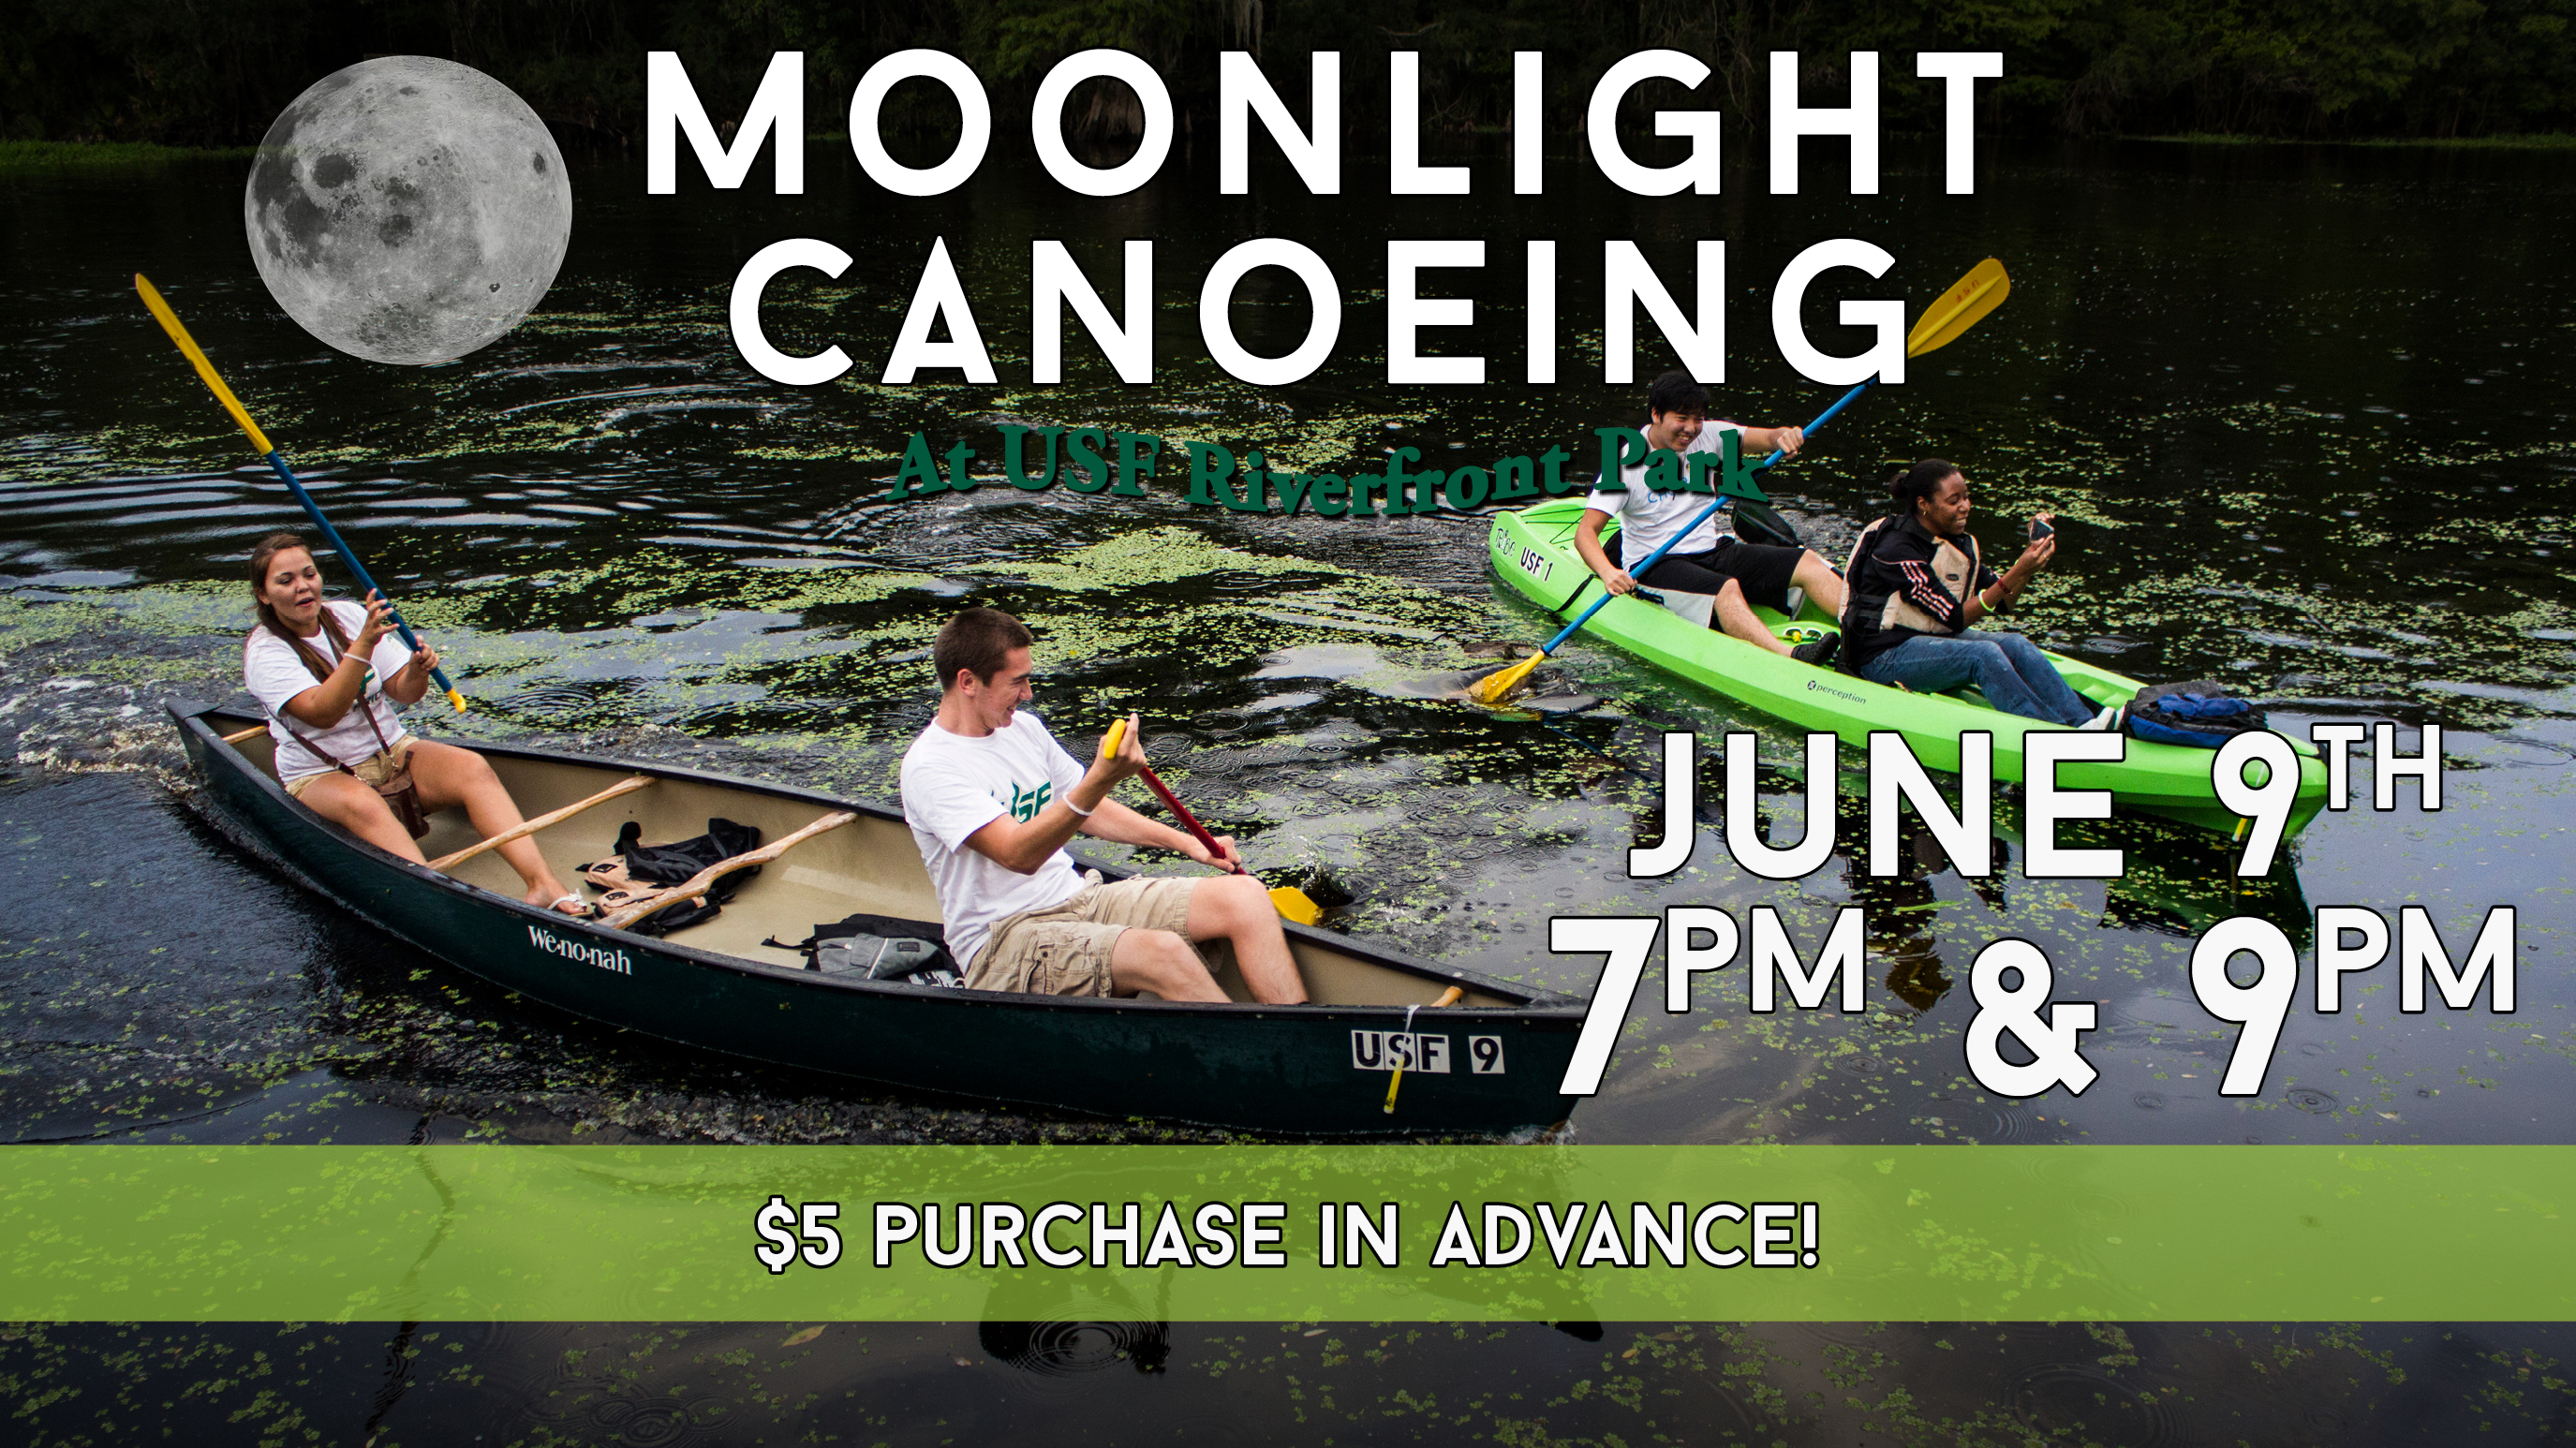 Moonlight Canoeing